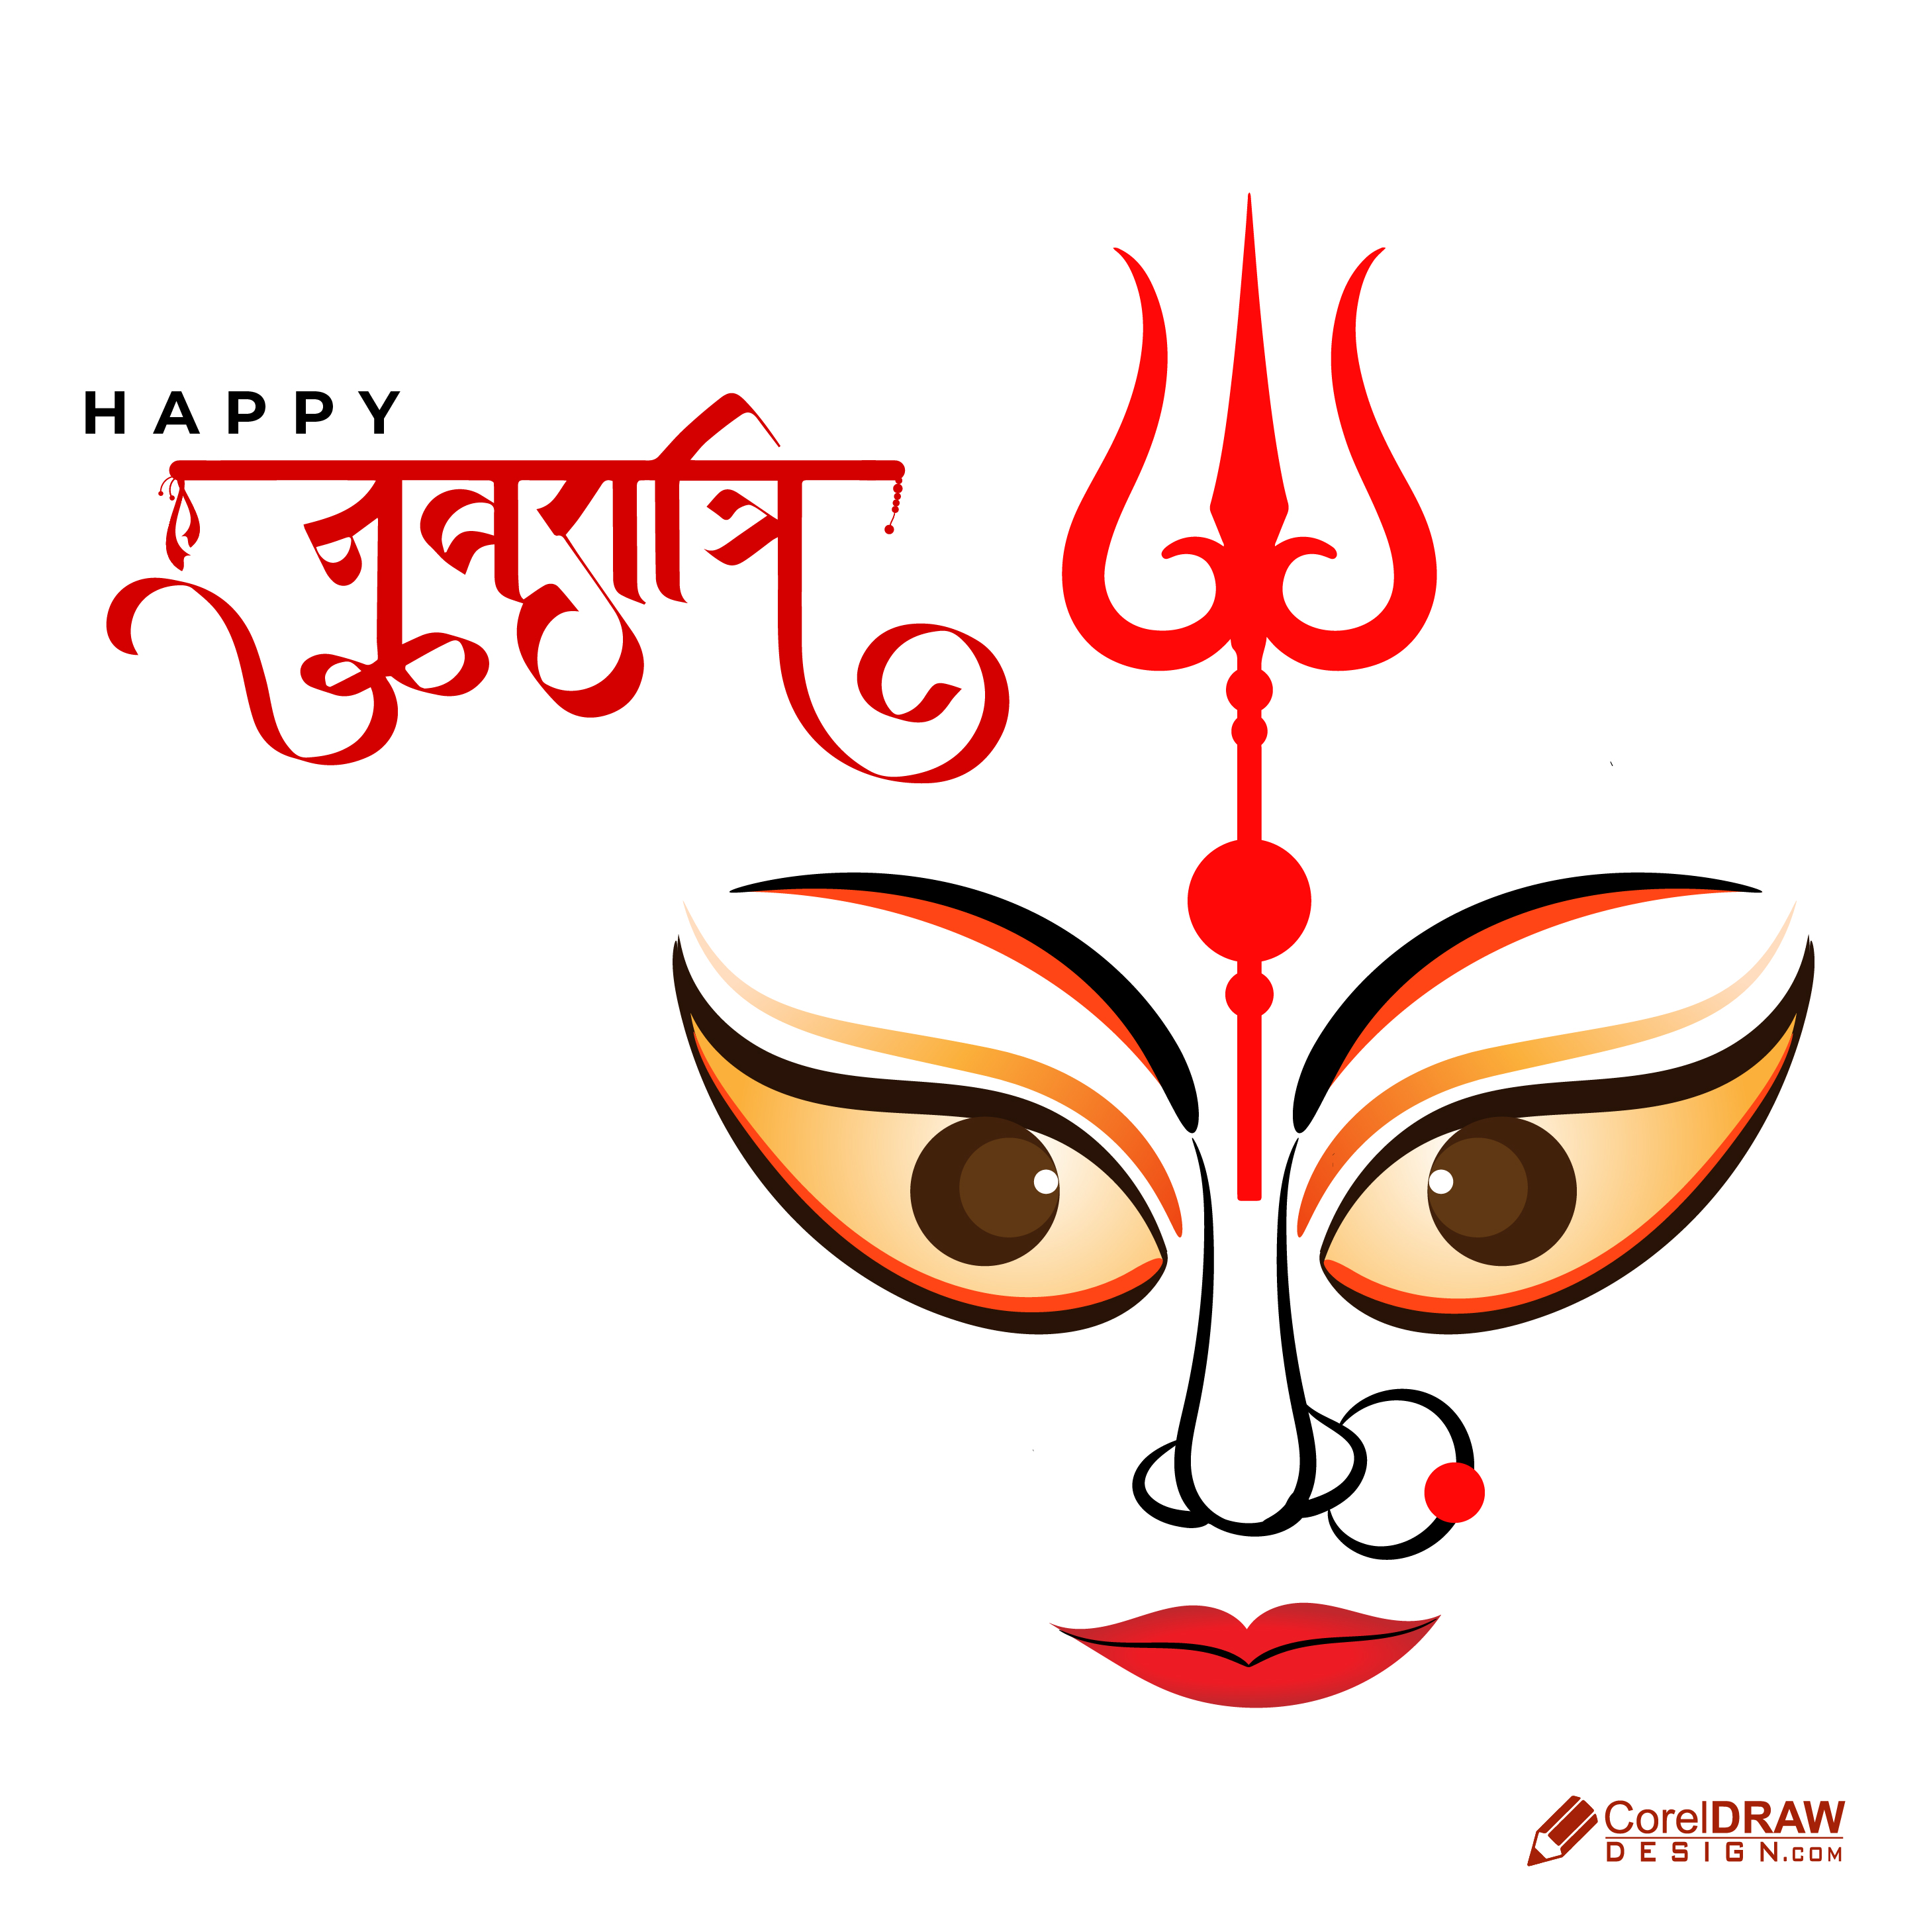 Happy Shubh Navratri Ethnic Festival Cultural Indian  Festival Background Wishes Card